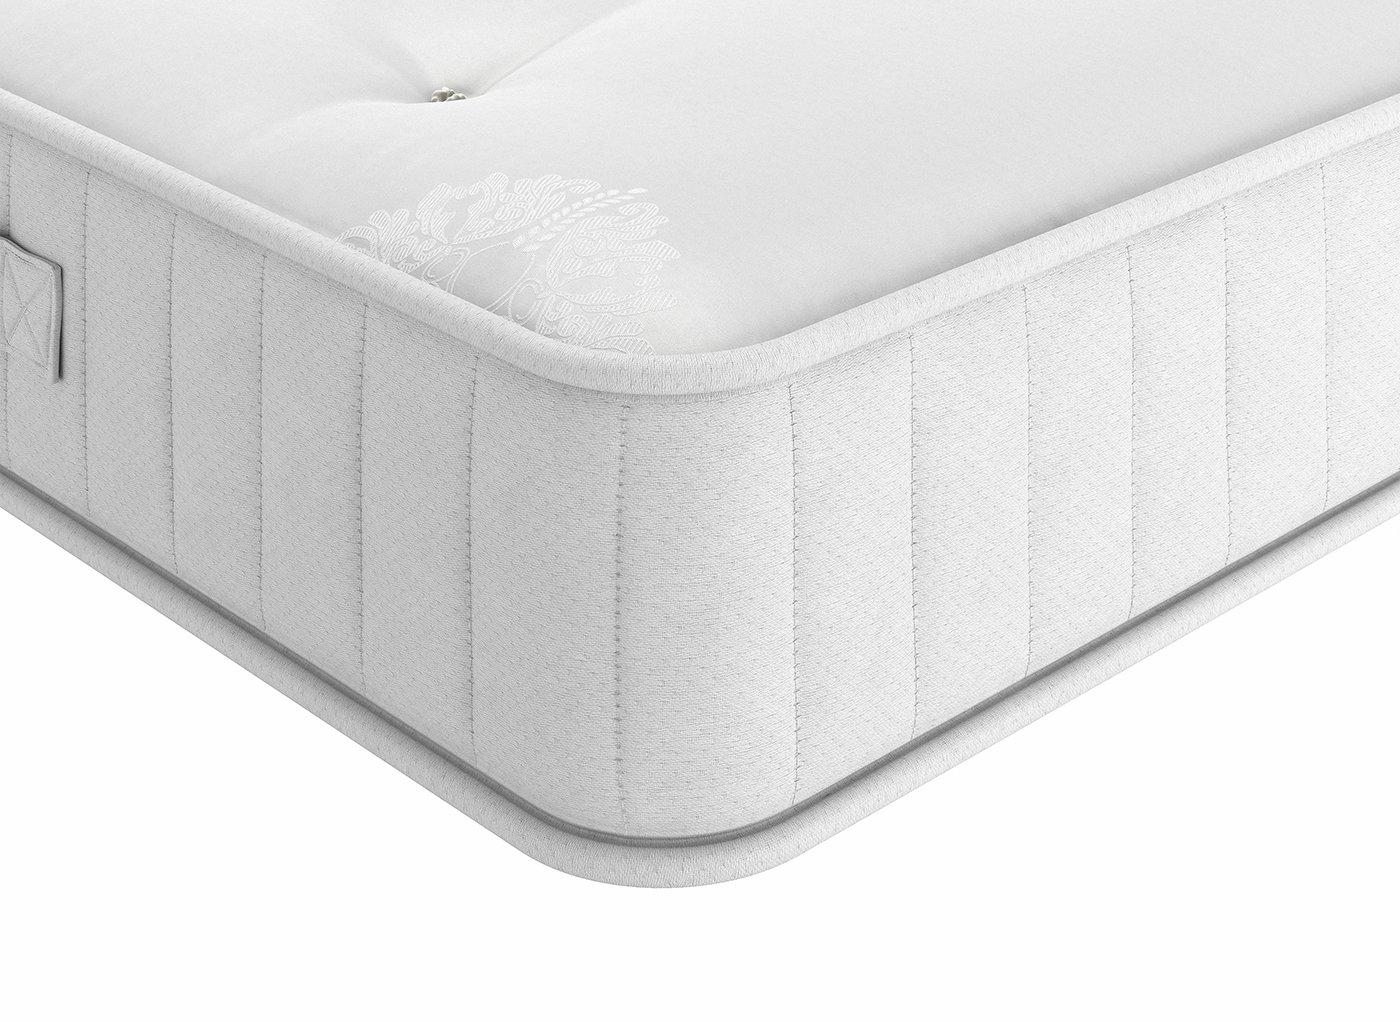 Bosley Pocket Sprung Mattress 4'6 Double